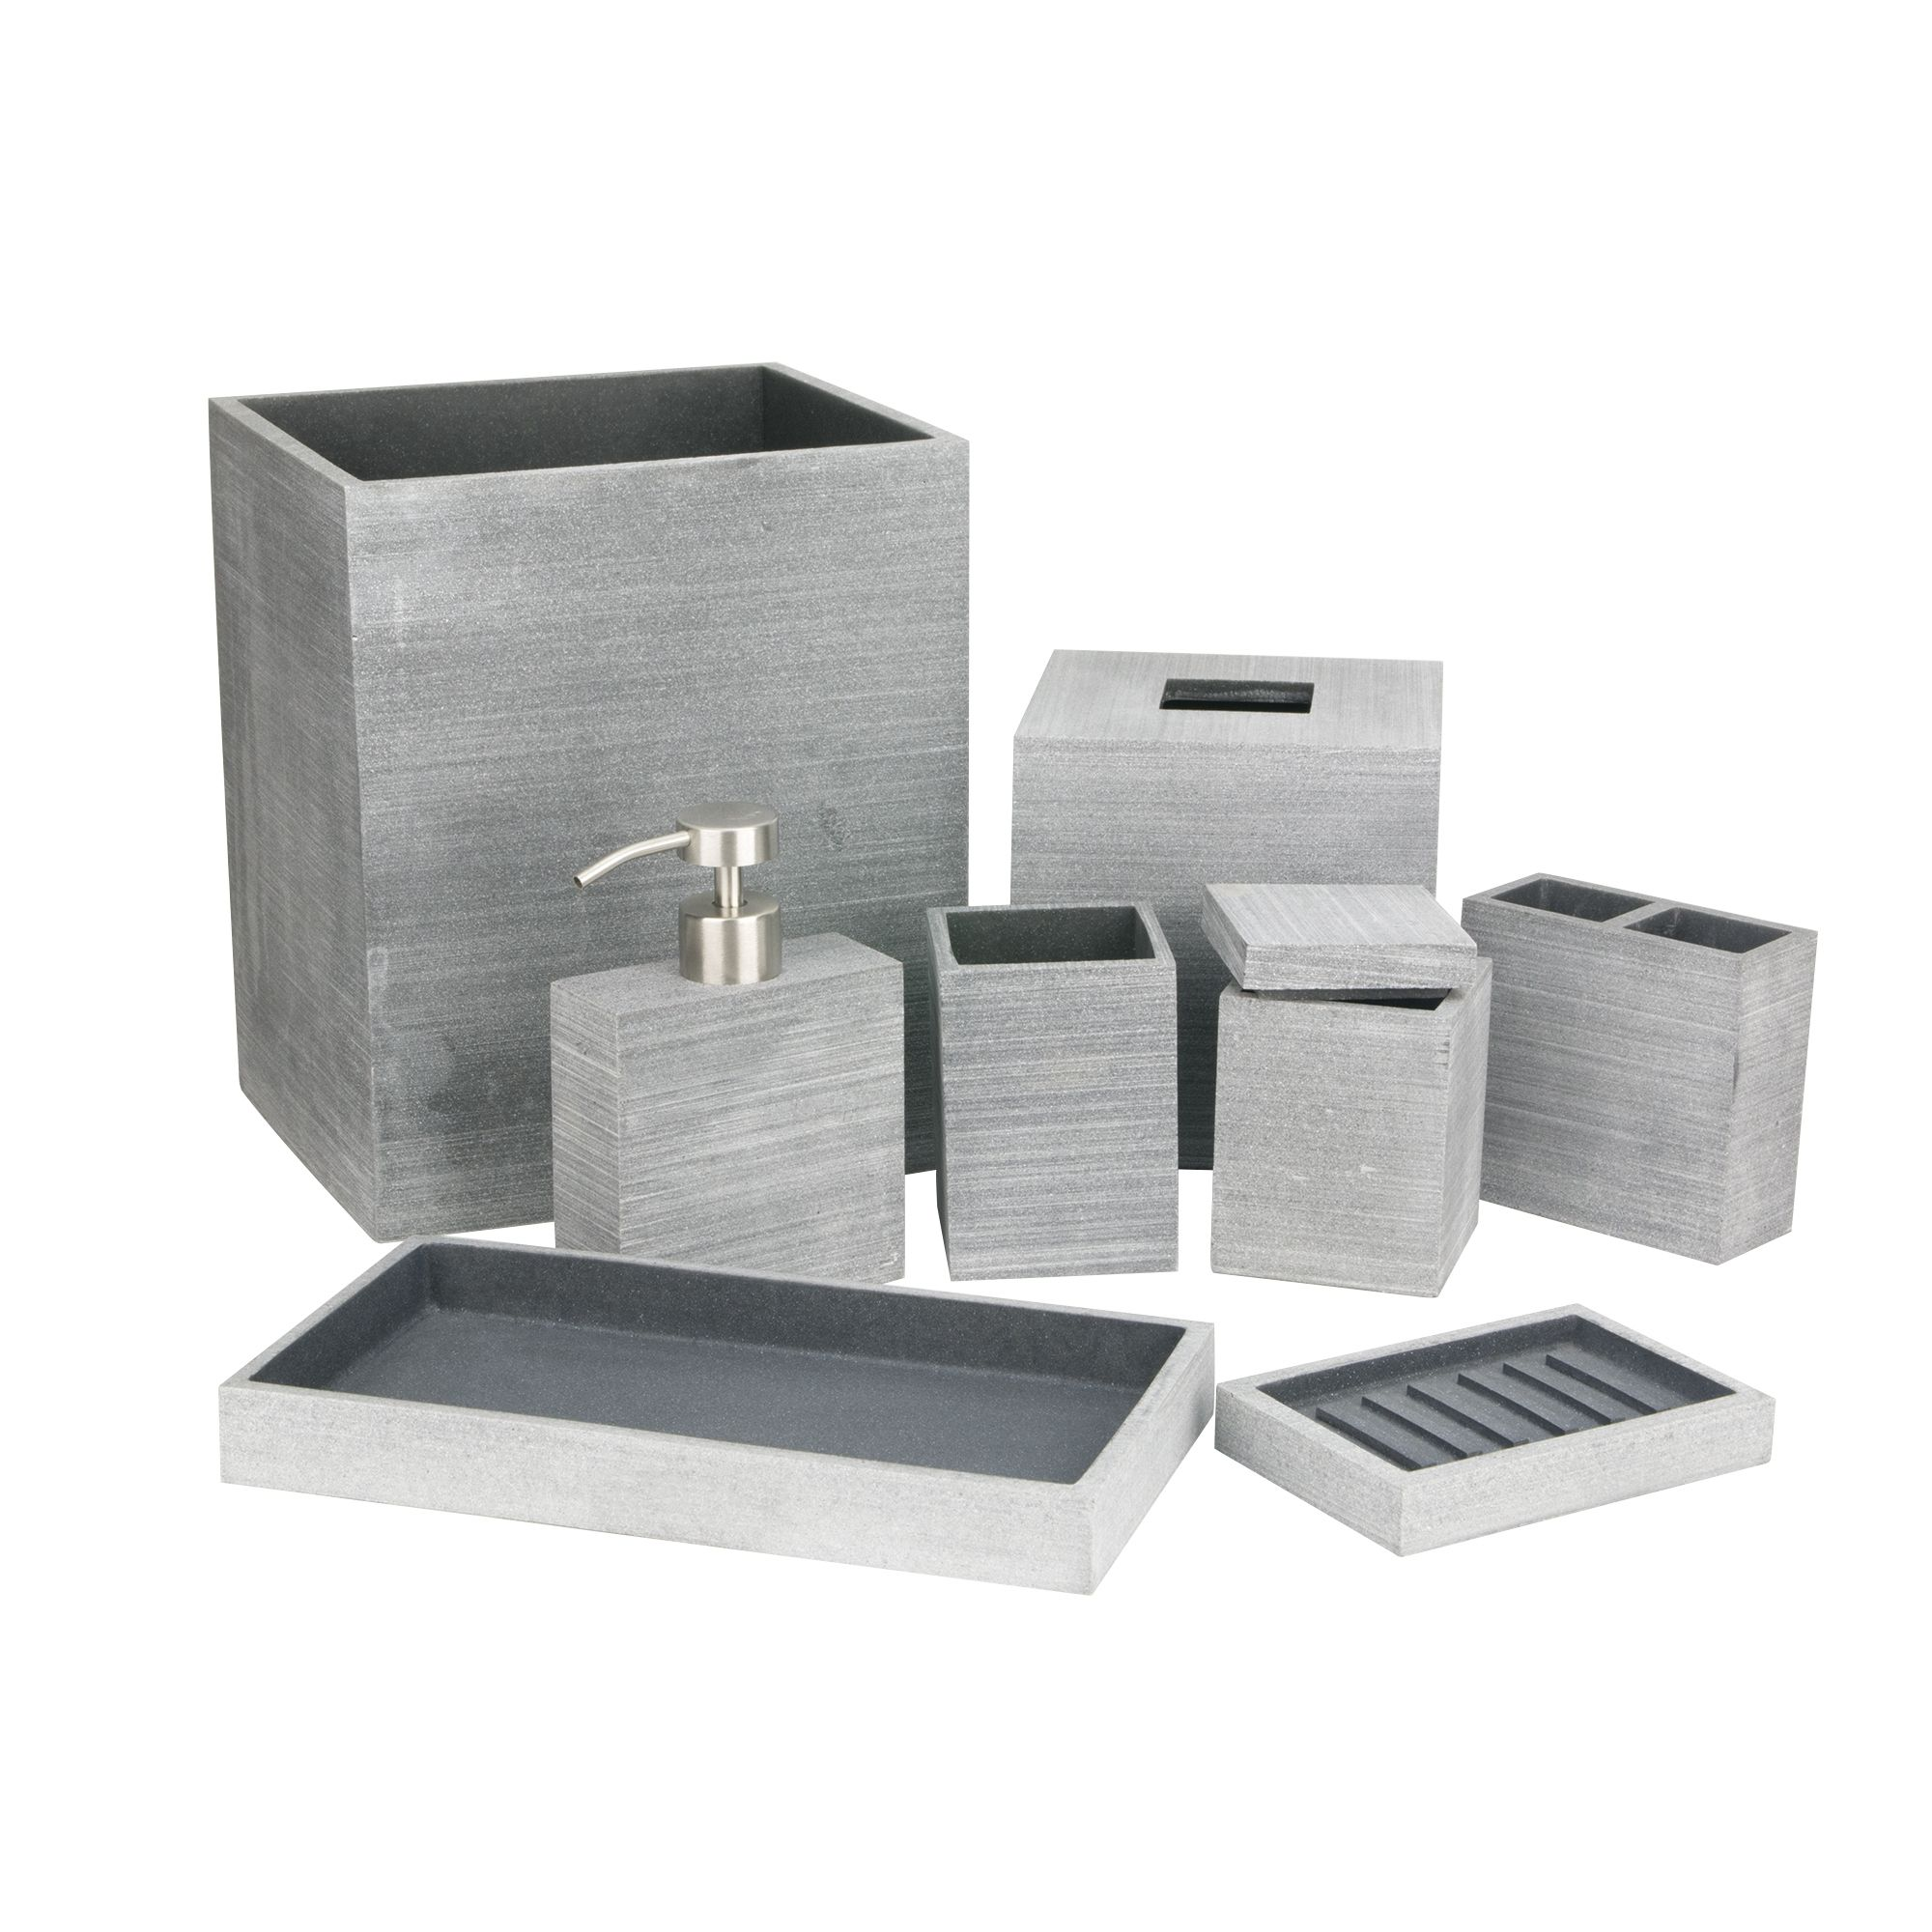 Slate Bathroom Accessories By Kassatex Lotion Dispenser Slate